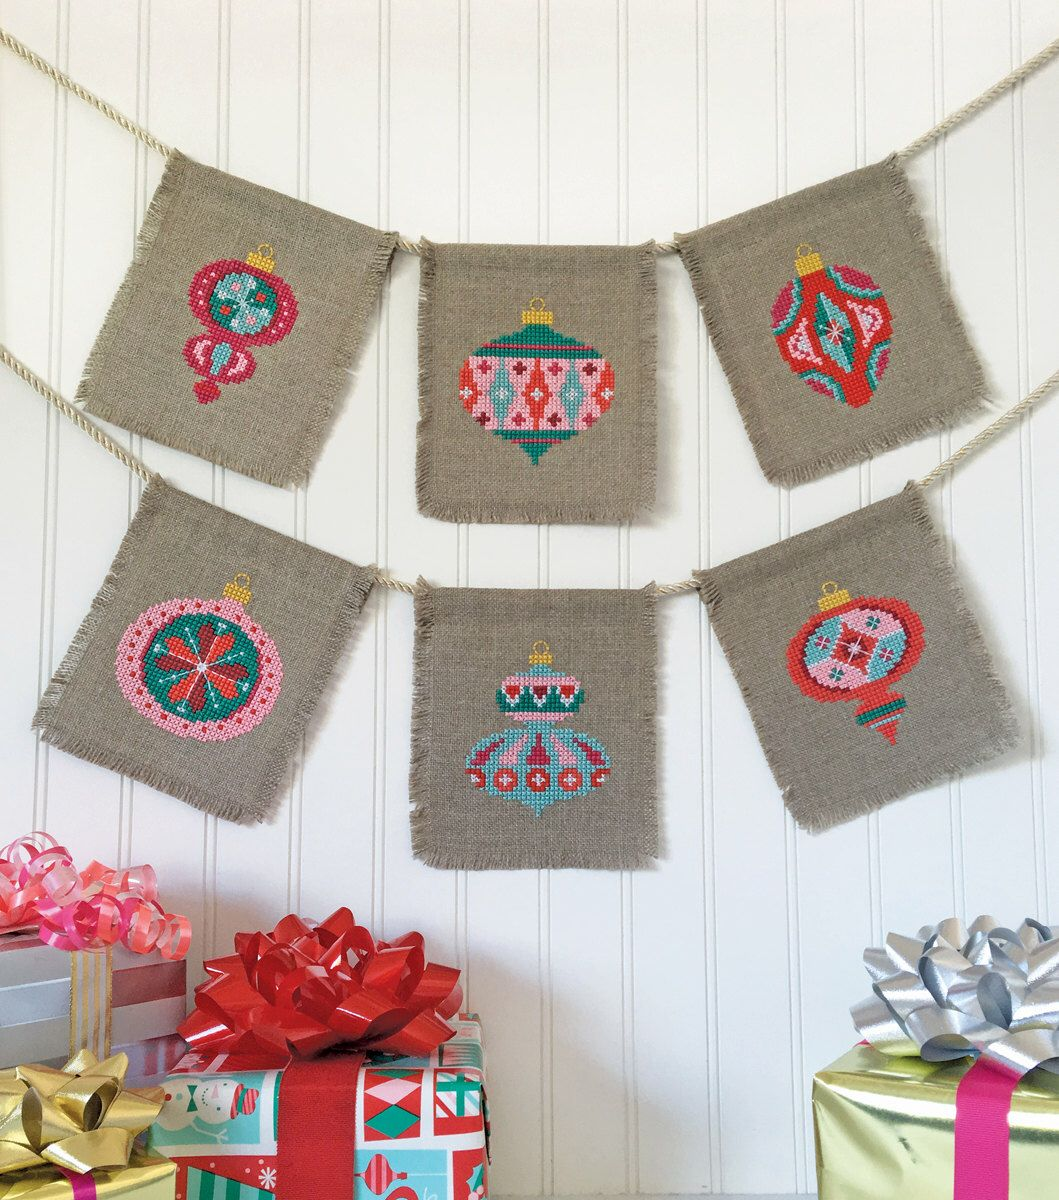 Christmas Baubles - set of seven charts - modern cross stitch pattern PDF - Instant download by SatsumaStreet on Etsy https://www.etsy.com/ie/listing/287203433/christmas-baubles-set-of-seven-charts